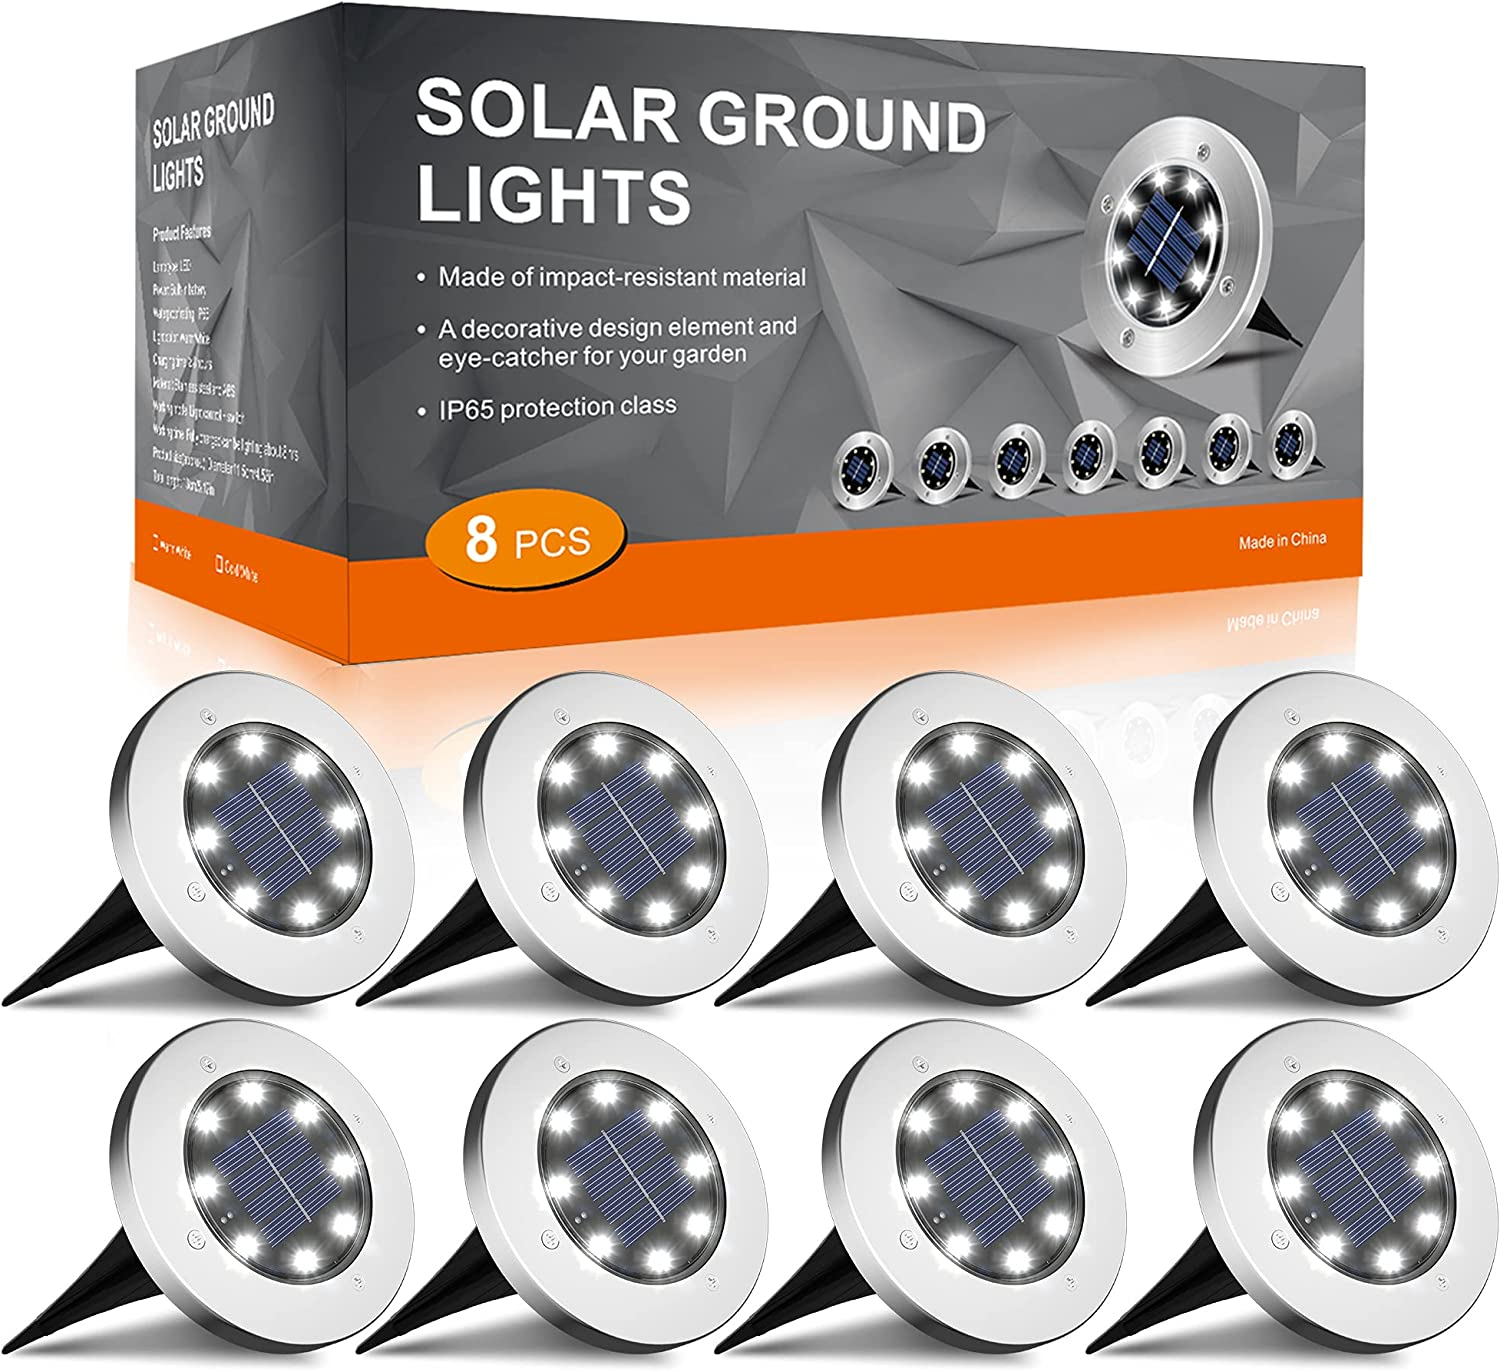 INCX Solar Ground Lights Outdoor, 8LED Solar Garden Lights IP65 Waterproof, Solar Disk Lights for Pathway, Yard, Deck, Patio, Walkway, Cold White, 8 Pack